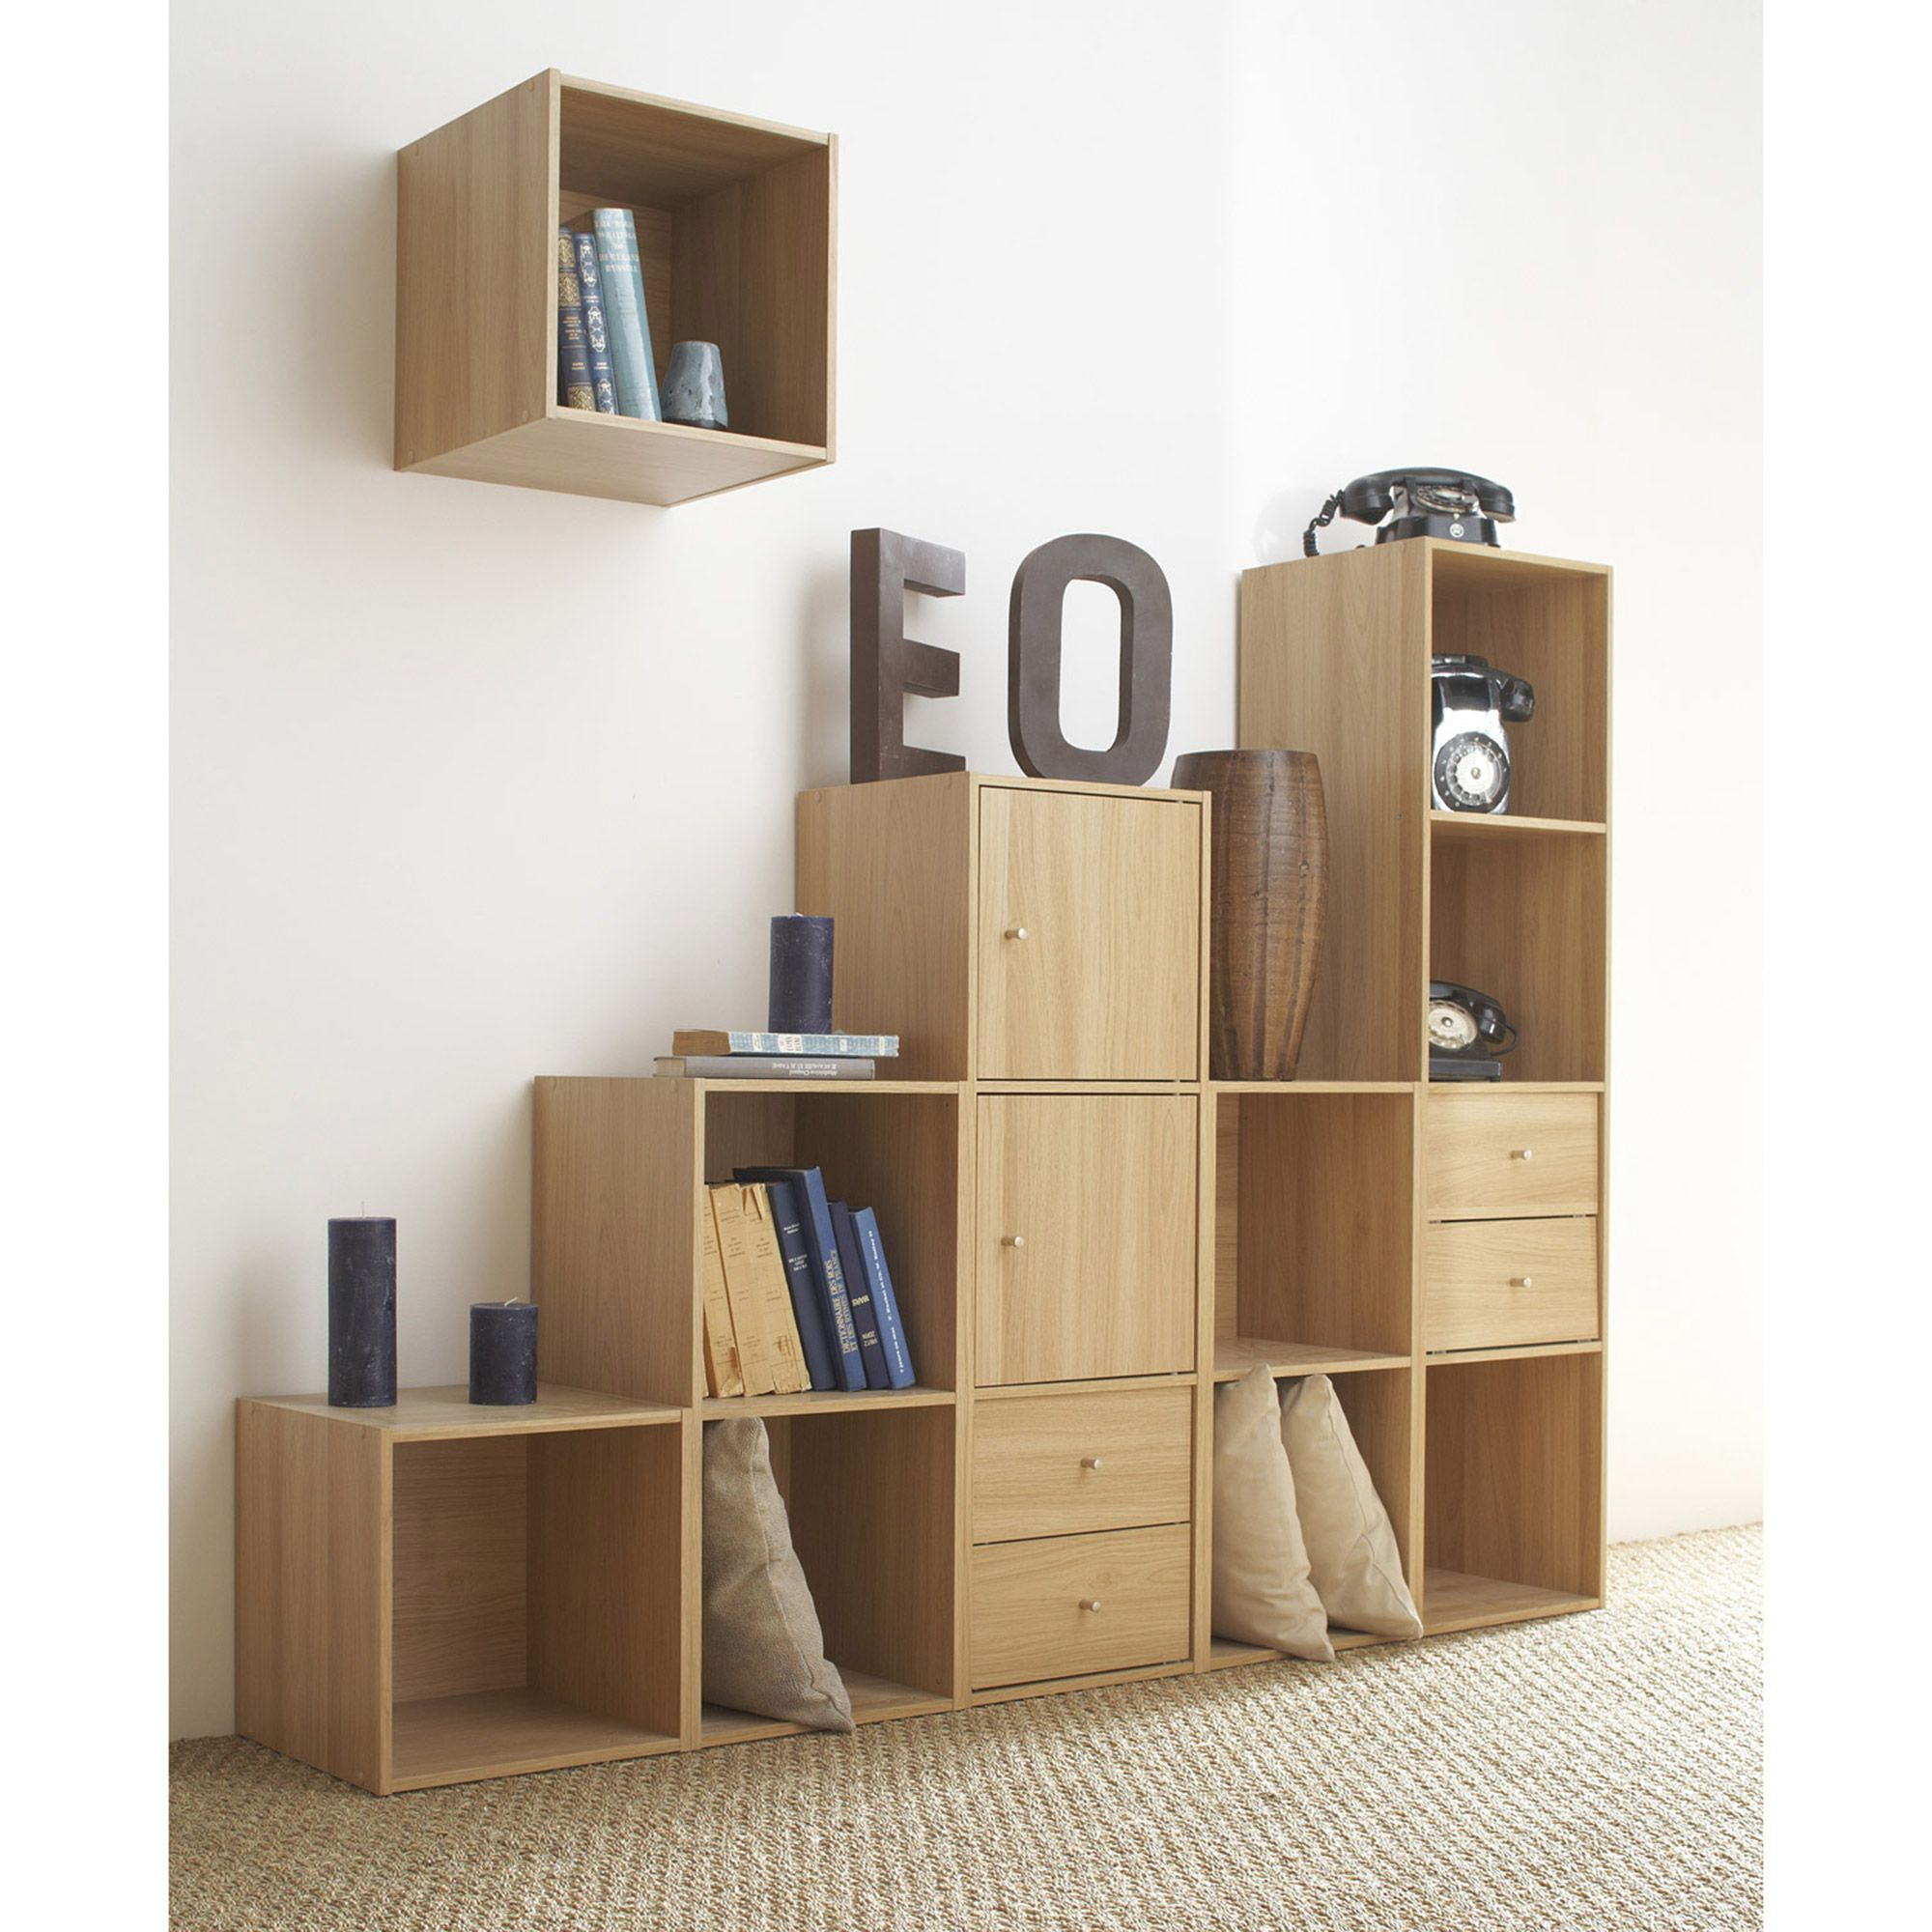 etag re cube en bois l35cm personnalisable multikaz bureau pinterest etagere cube. Black Bedroom Furniture Sets. Home Design Ideas